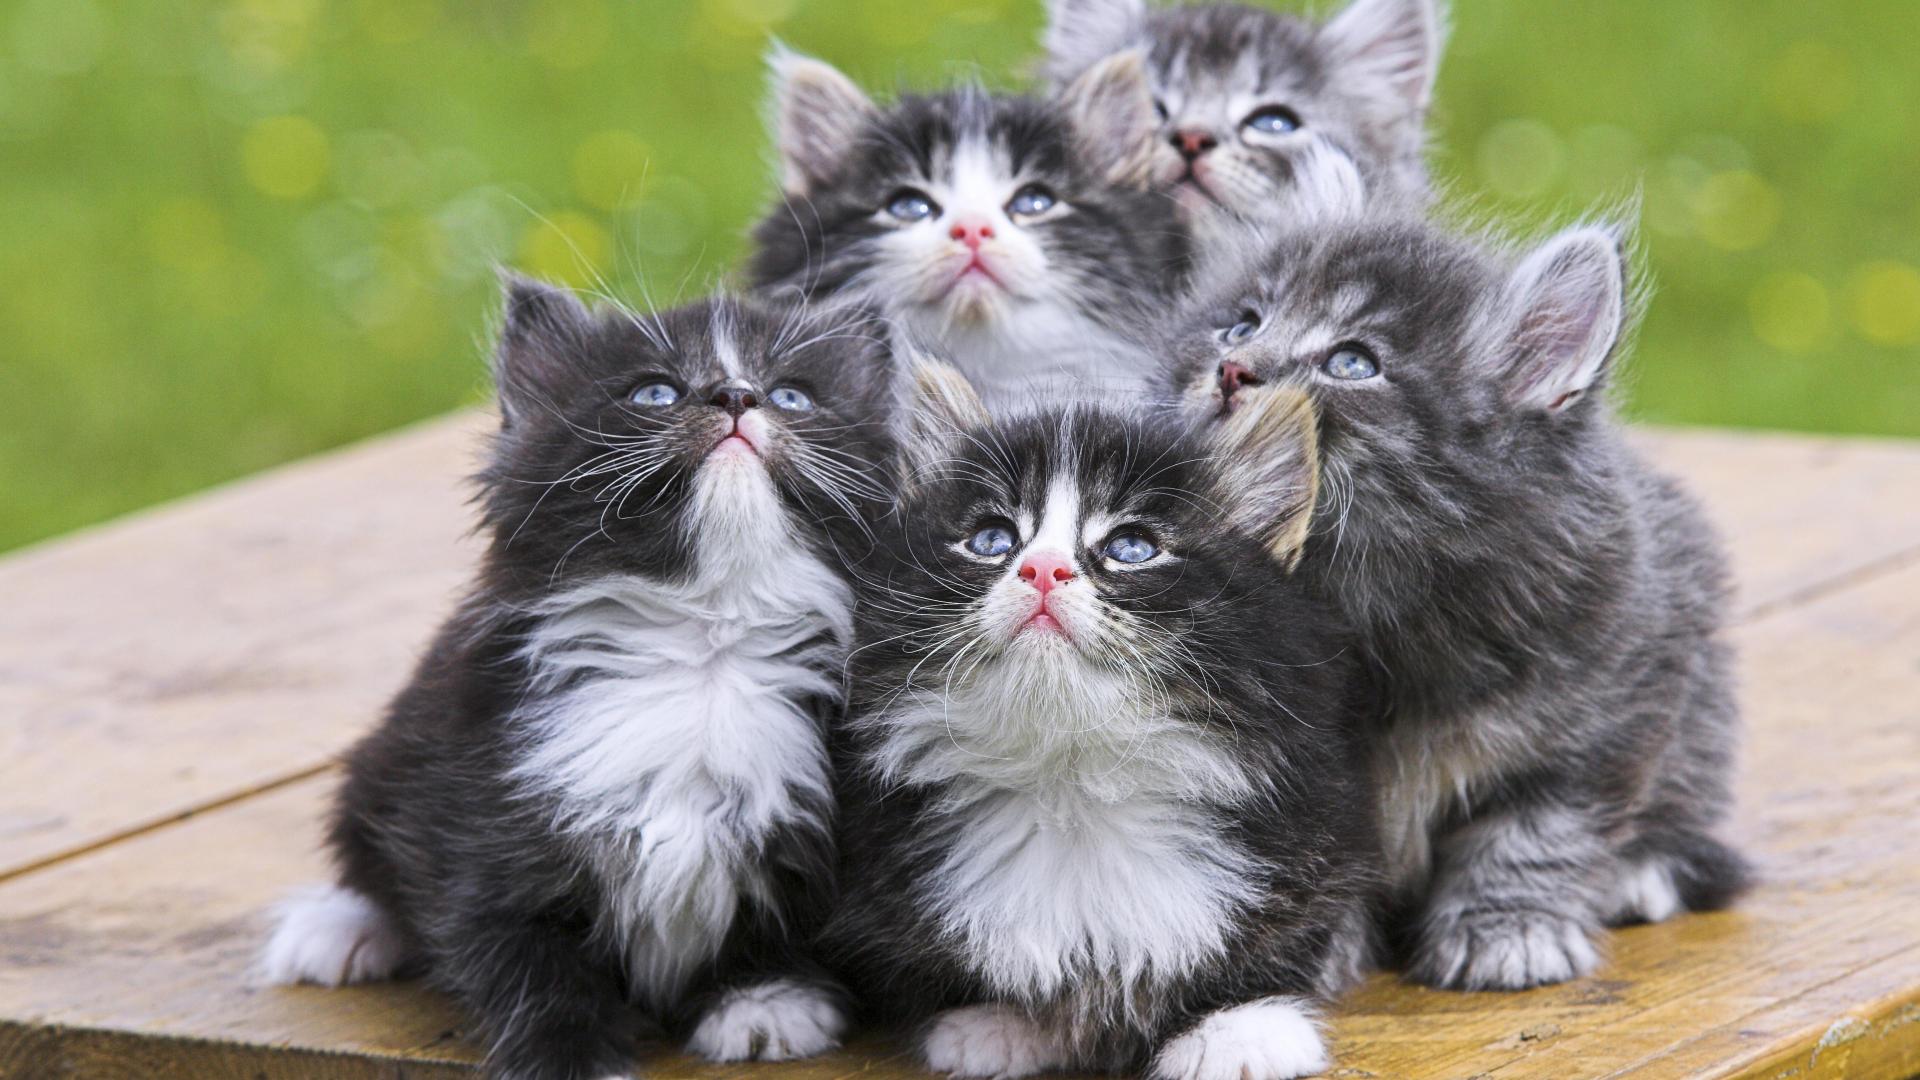 Kittens HD Wallpaper High Quality WallpapersWallpaper Desktop 1920x1080